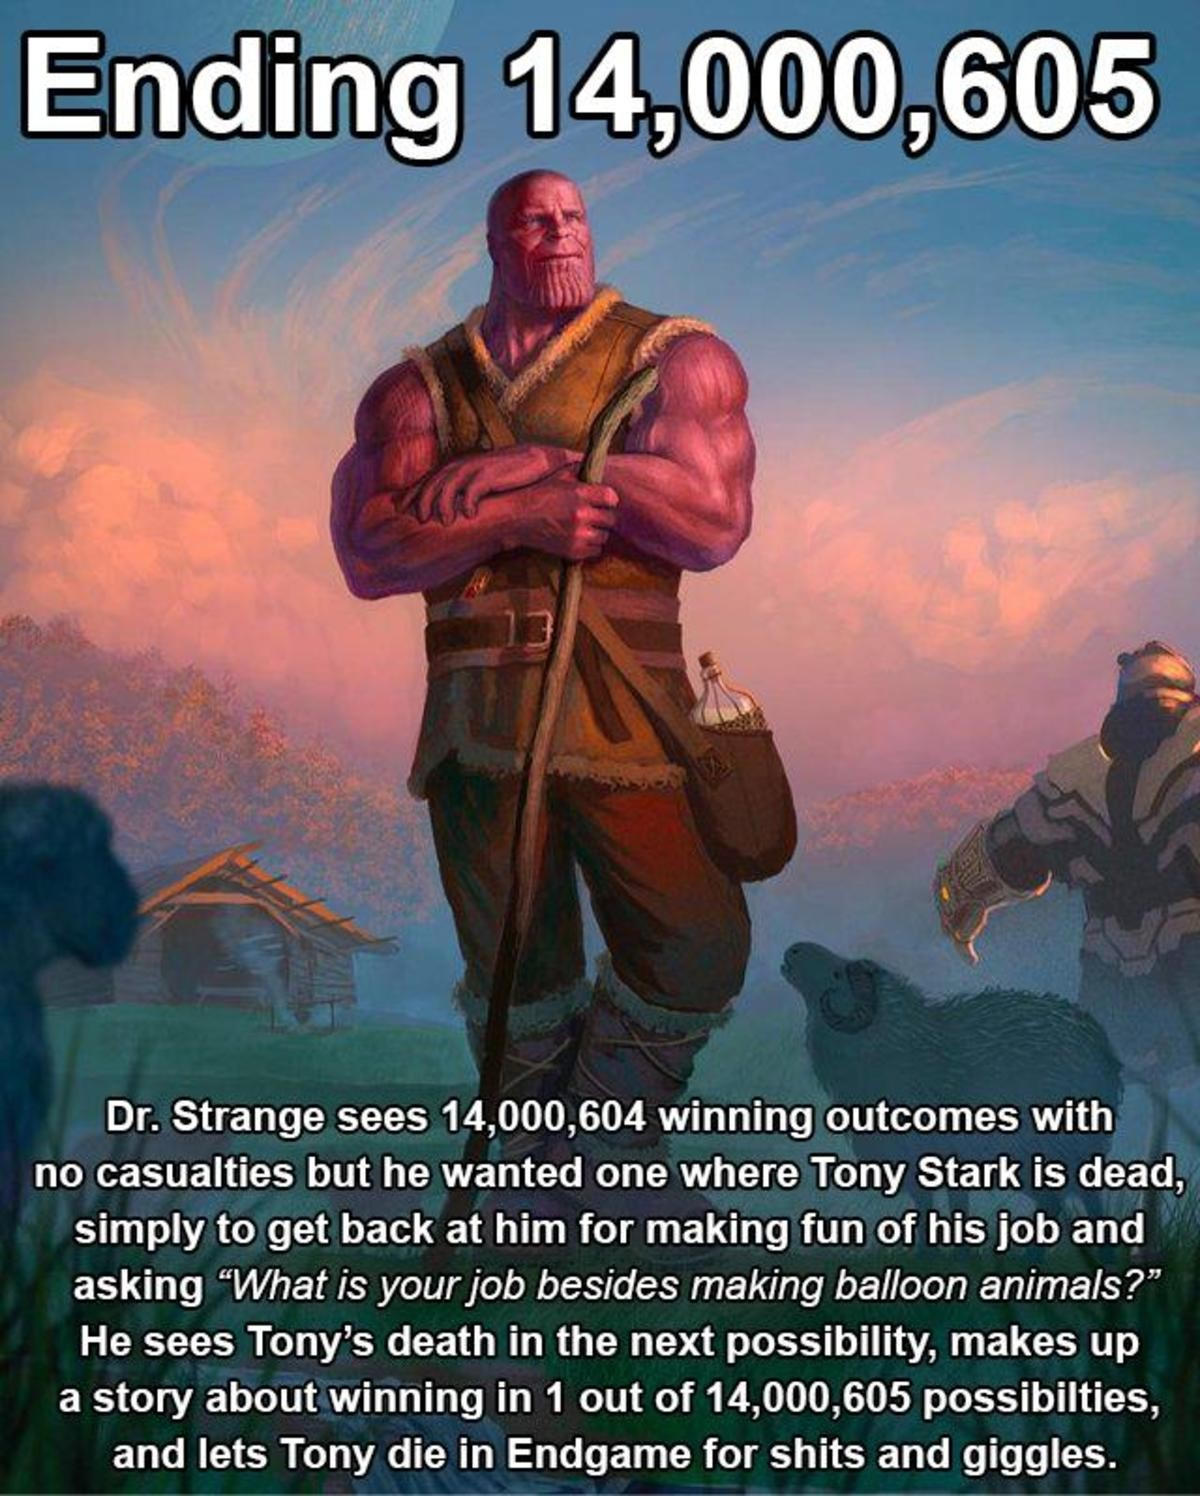 2358. .. Dr. Strange still follows the hippocratic oath. He only harms when he has to.